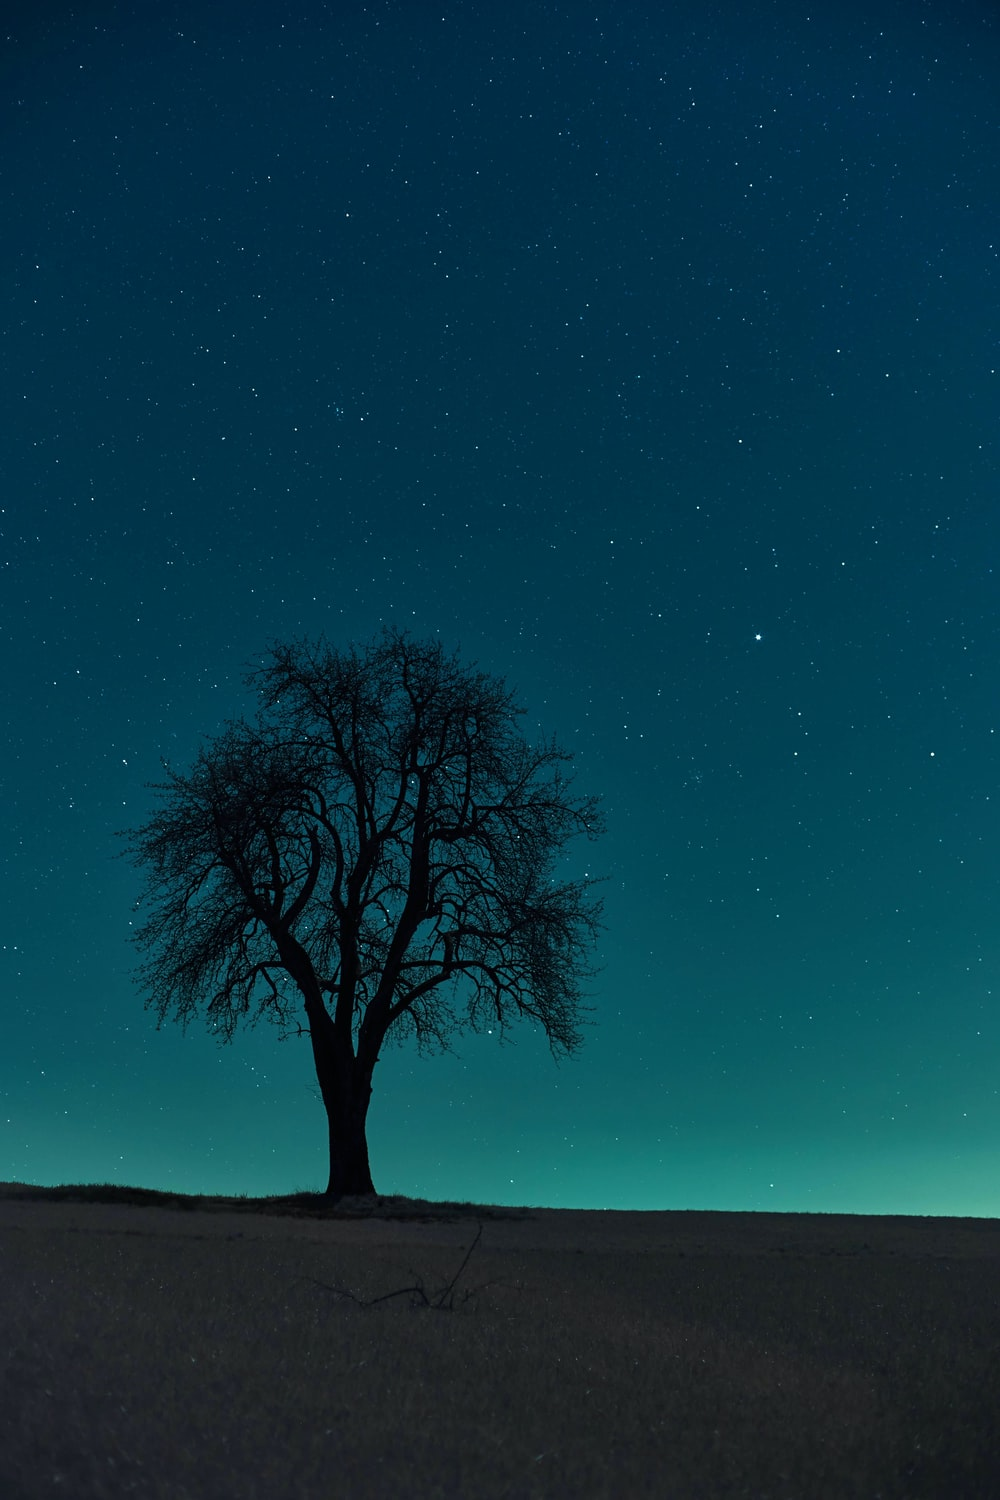 tree under blue sky during night time